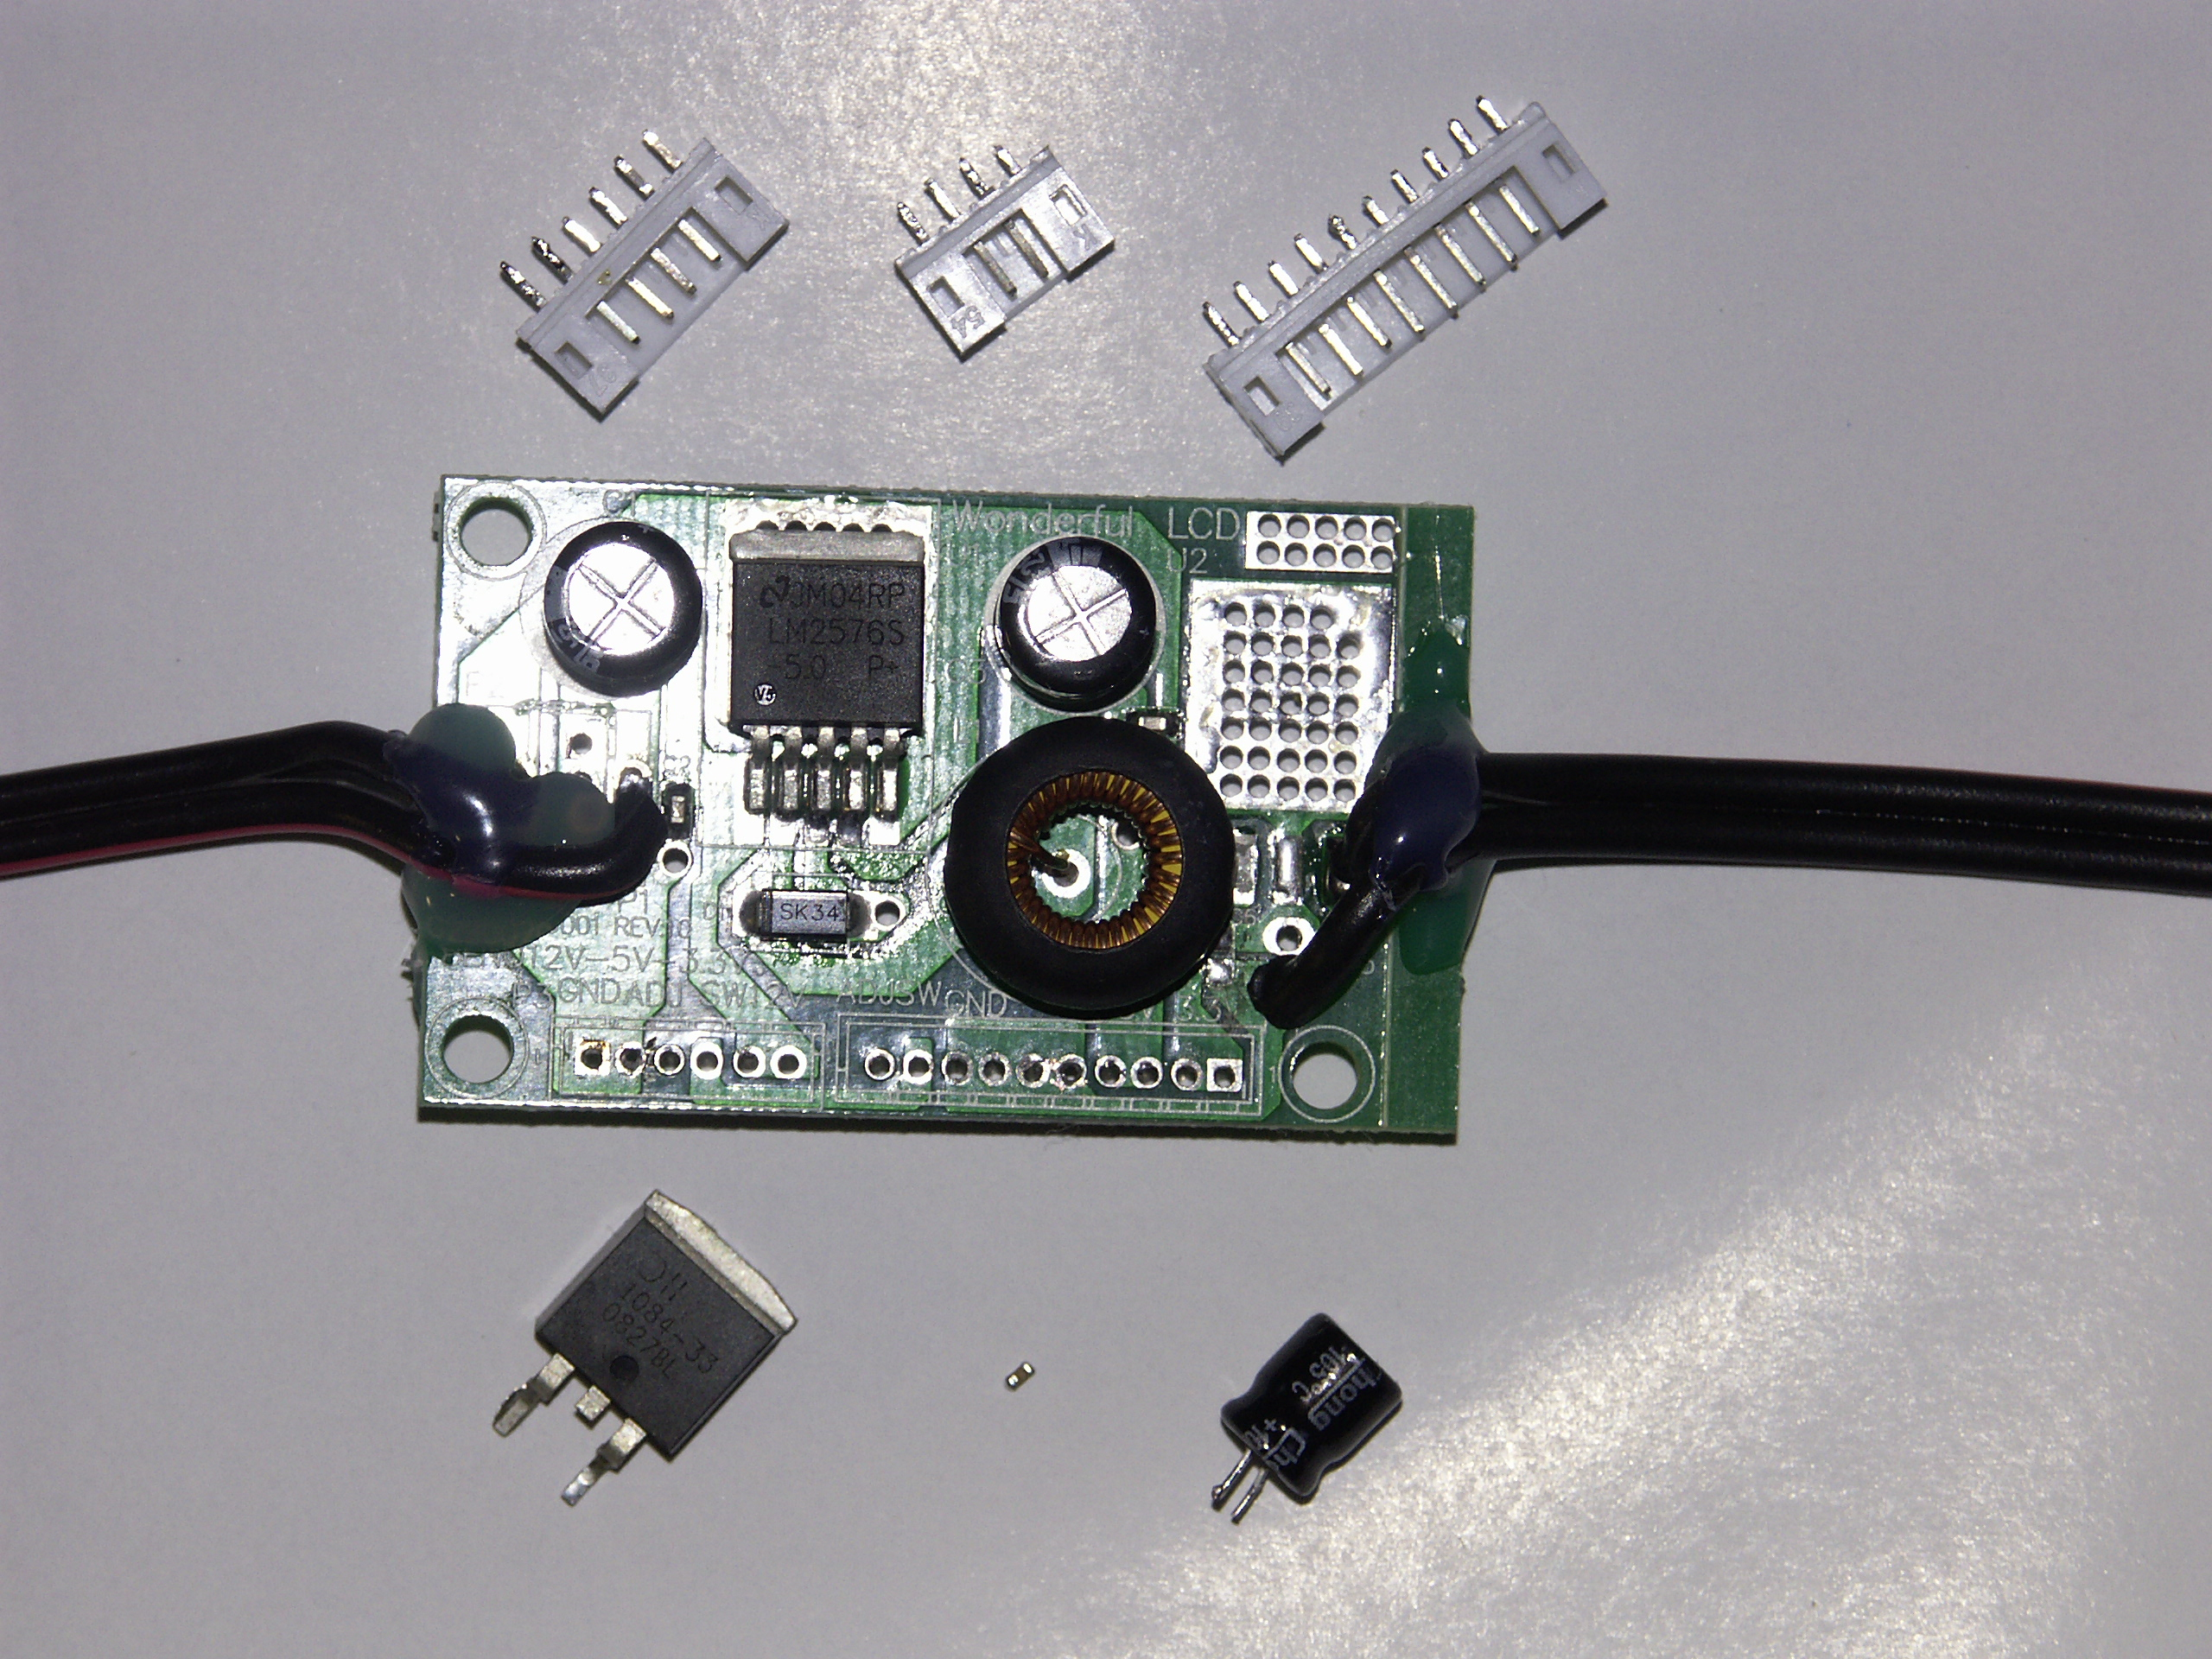 Benq Switching Power Supply Wiring Diagram Top View Of Pcb